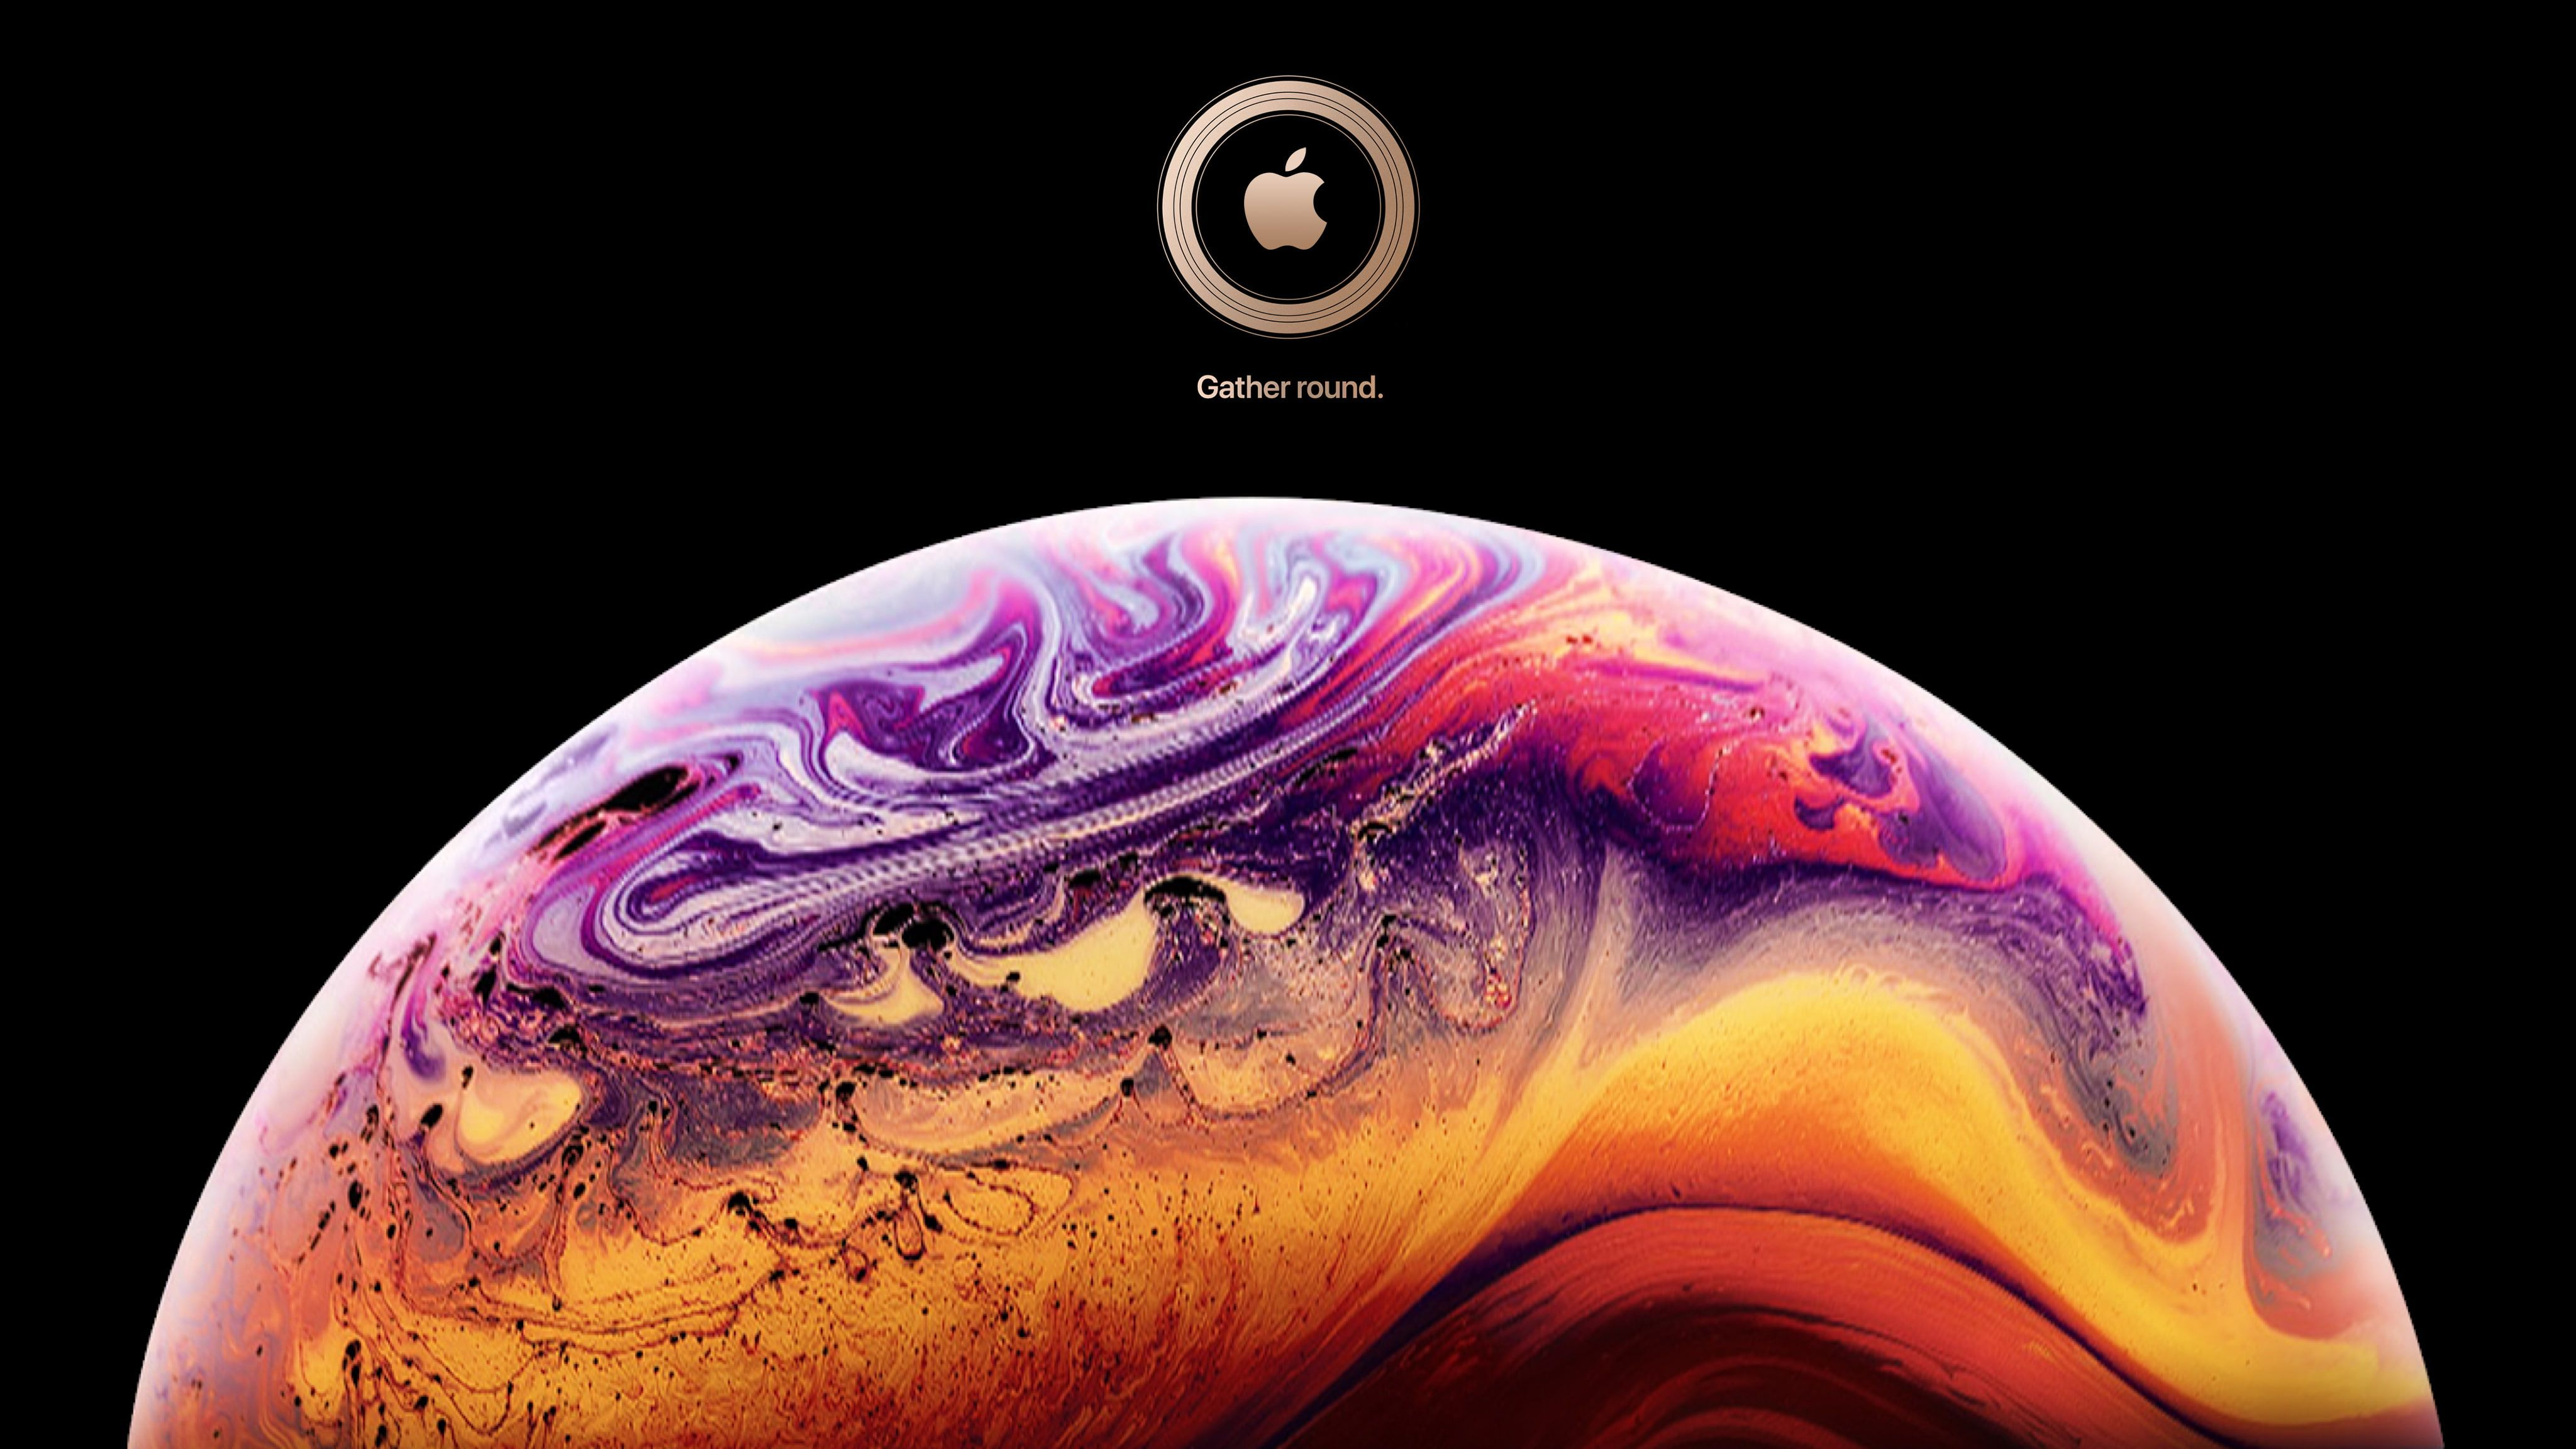 Iphone Xs Official Launch Event 4k Official Iphone Launch Event 4k Wallpaper Hdwallpaper Desktop Iphone Hacks Iphone Wallpaper Gold Wallpaper Iphone